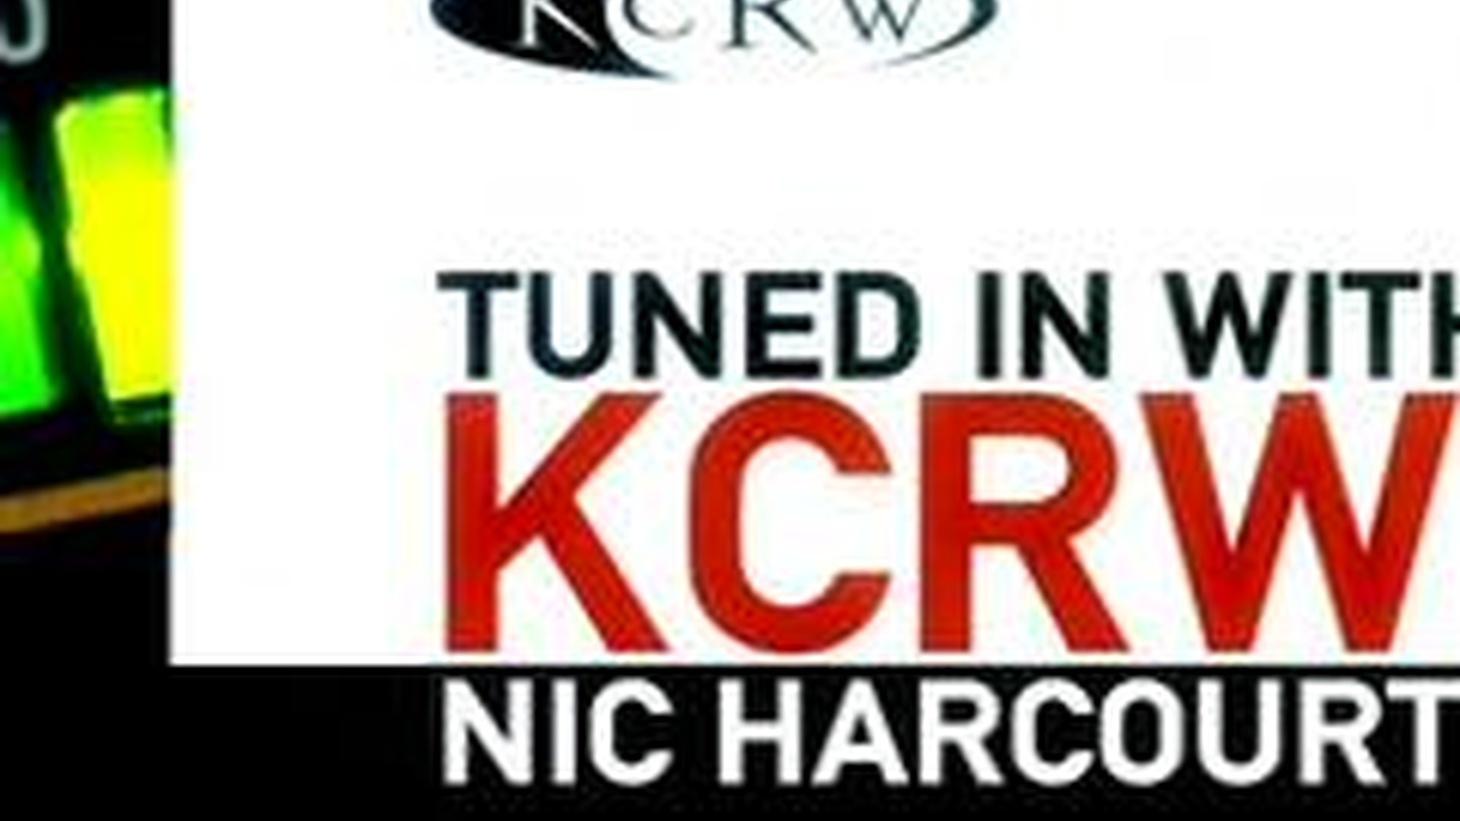 This week, KCRW's Morning Becomes Eclectic host Nic Harcourt introduces a new batch of hot music. Enjoy tracks from new albums by Benji Hughes (A Love Extreme), The Faint (Fasciinatiion), and Leila (Blood Looms and Blooms), as well as...